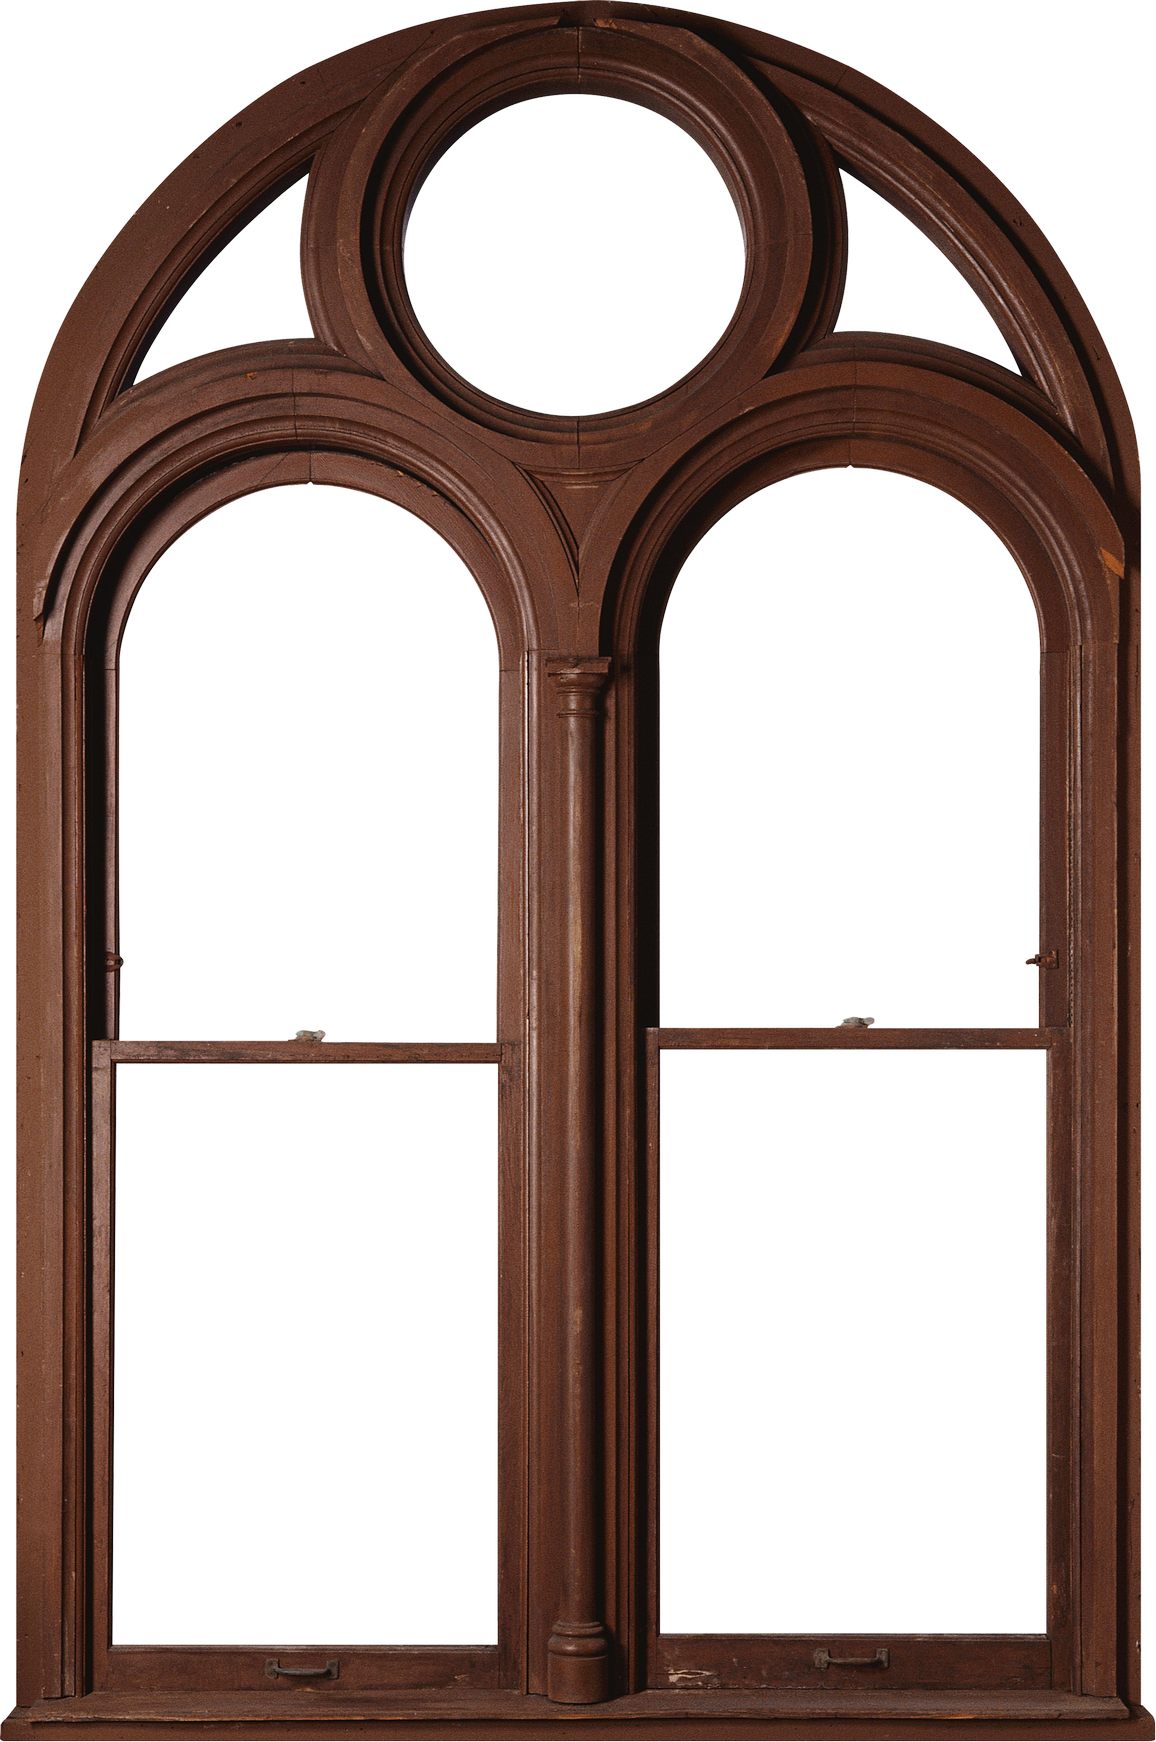 Window Png Image Window Illustration Victorian Windows Window Frame Picture